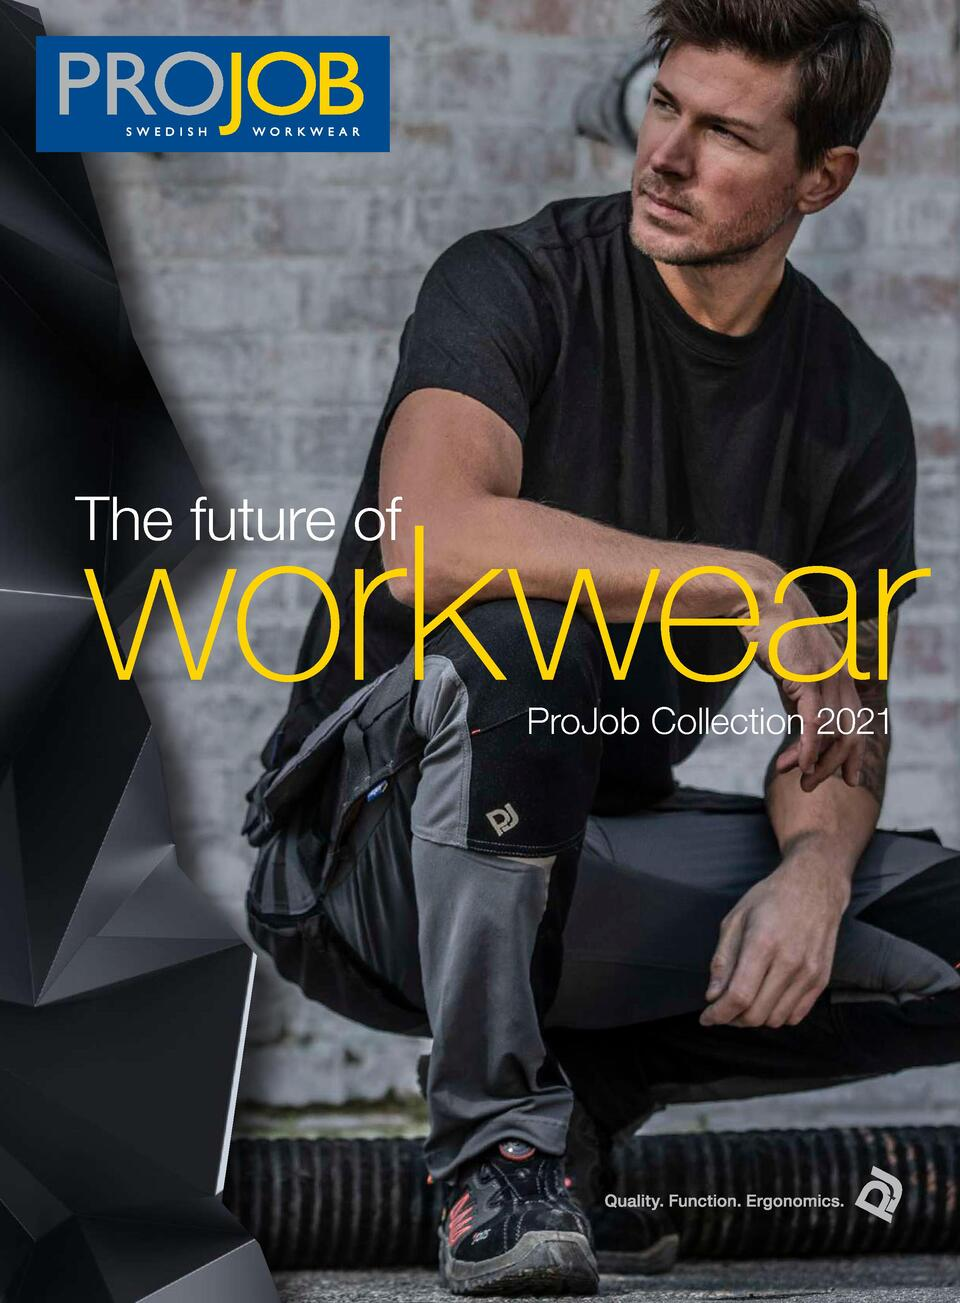 workwear  The future of  ProJob Collection 2021